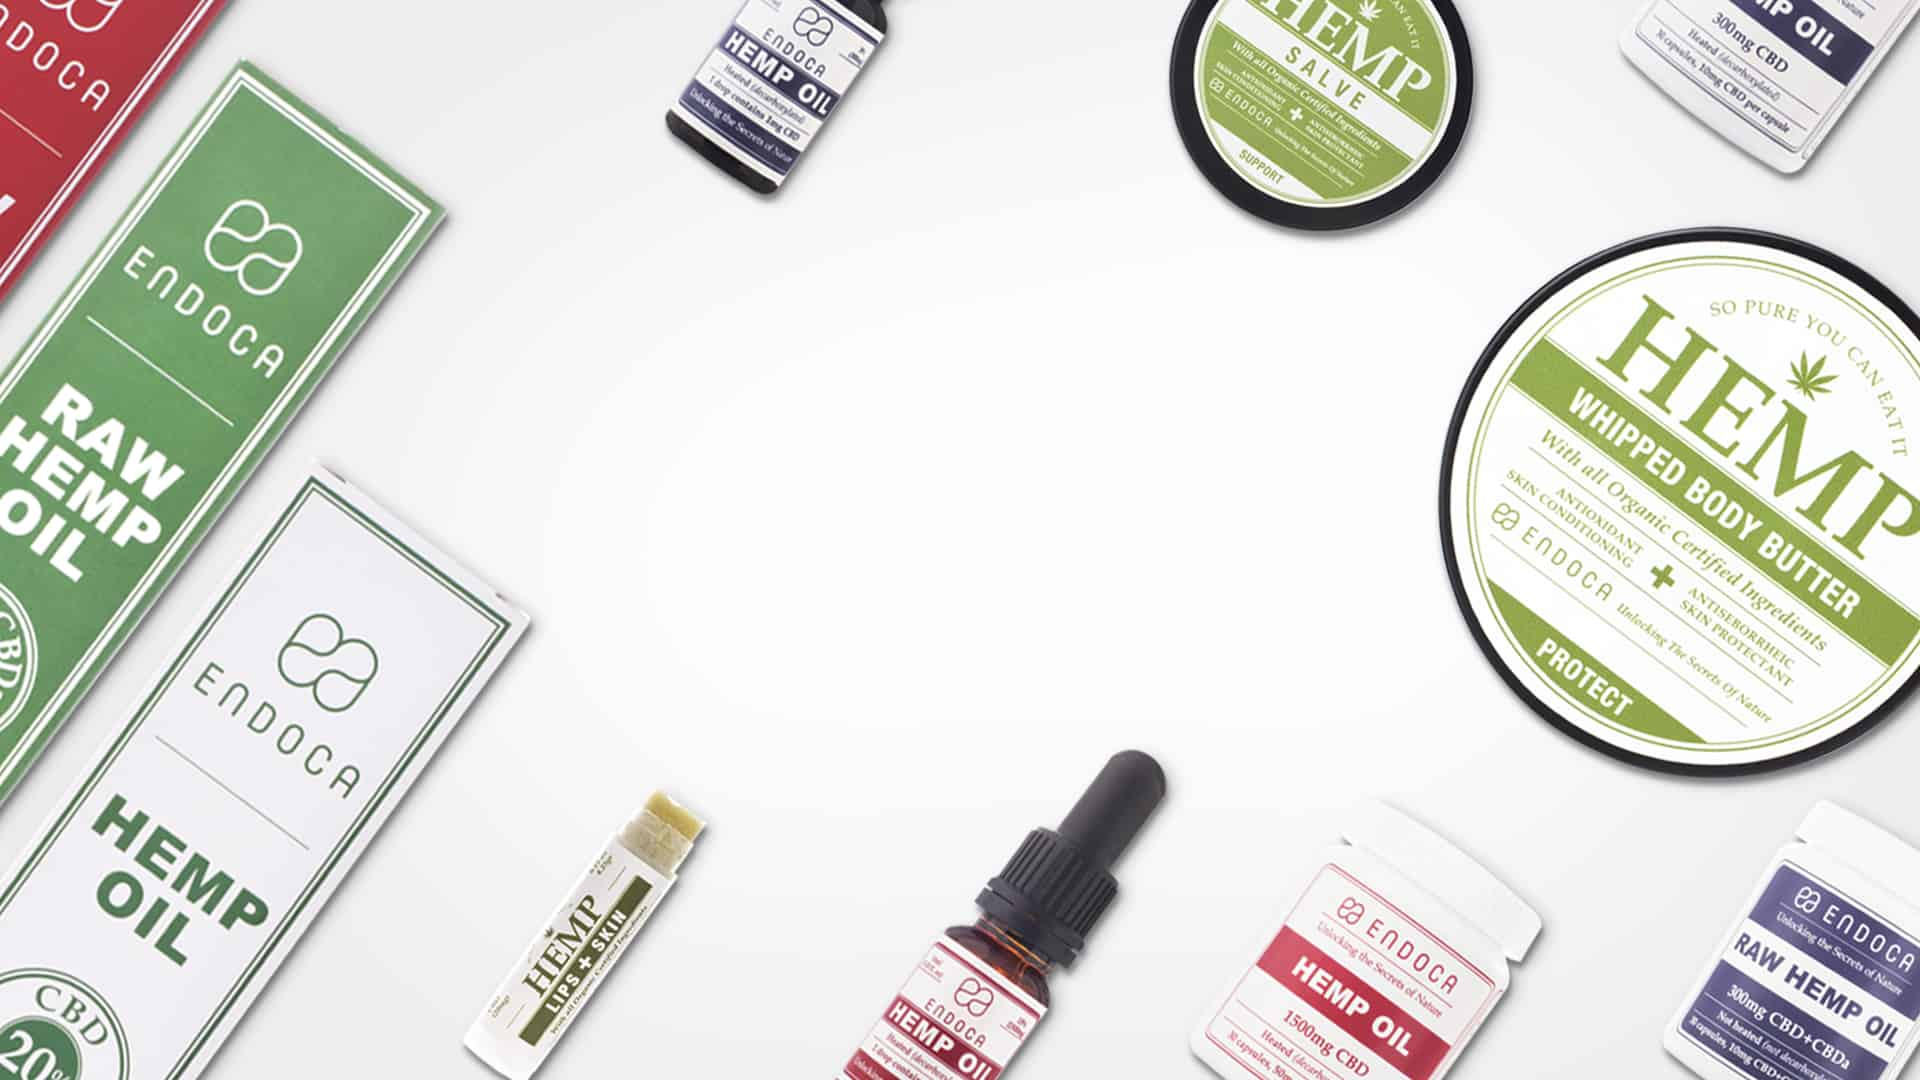 Endoca Coupon Code - Online Discount - Save On Cannabis